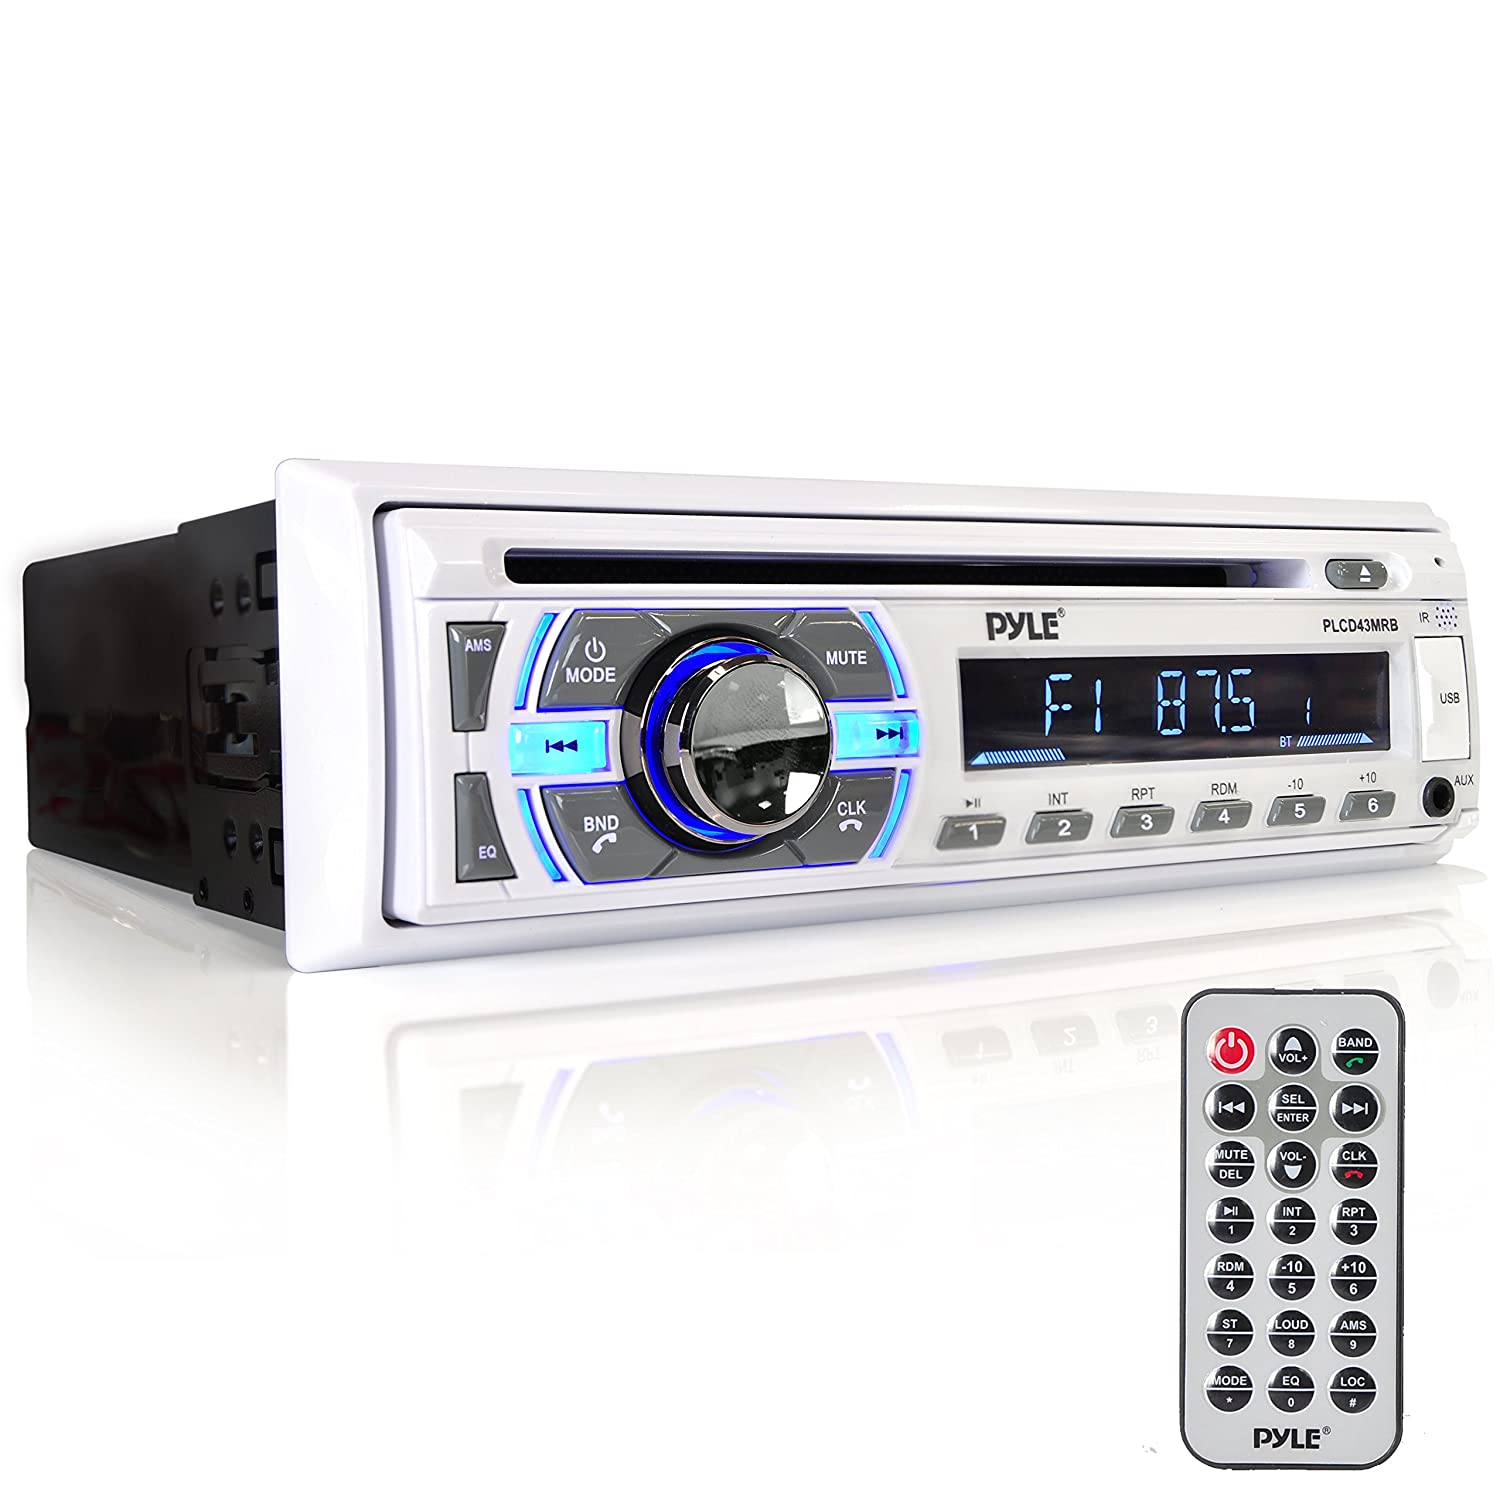 Pyle PLCD43MRB Wireless Bluetooth Stereo Head Unit Receiver Sound Around